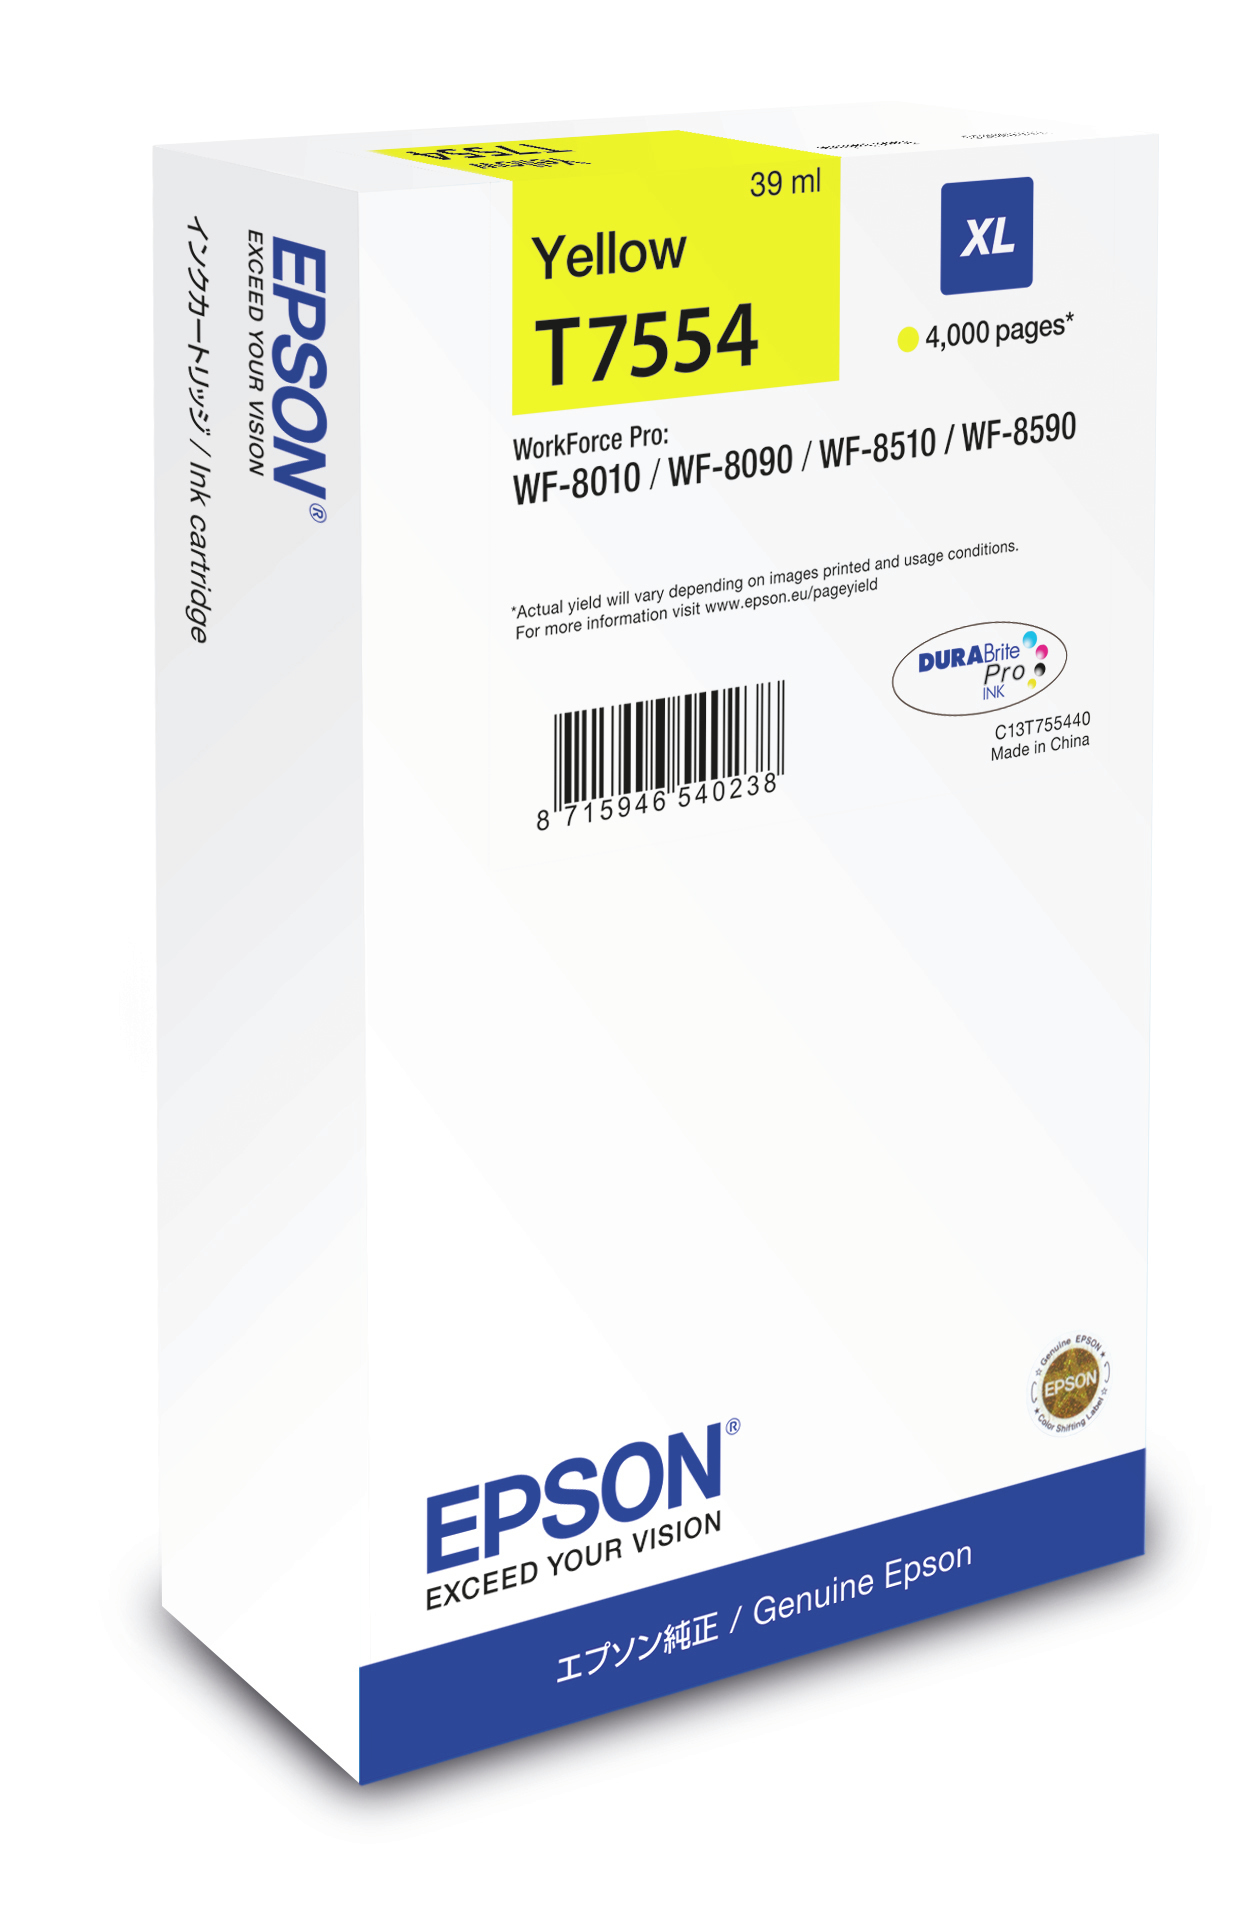 C13t755440 epson Wf8xxx Ink Cart Yellow Xl 4k - AD01